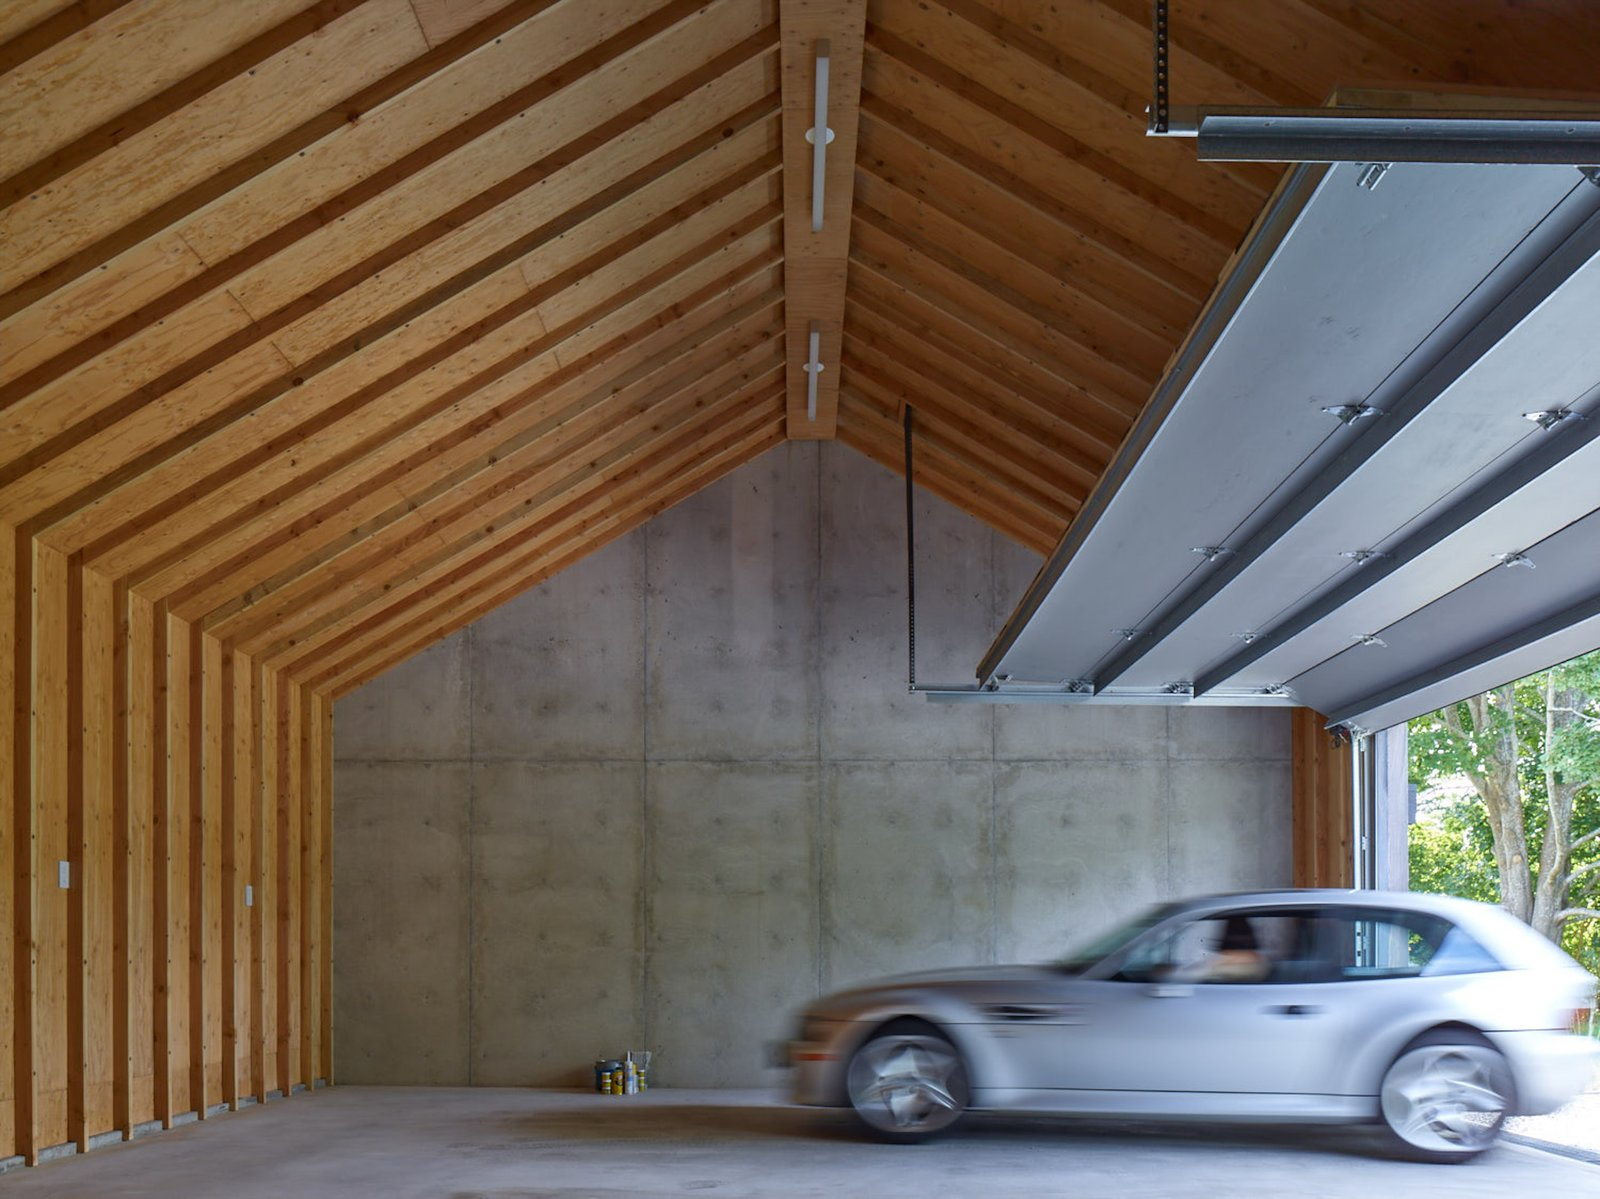 Garage The garage behind the concrete wall.  Best Photos from This Stunning Suffolk County Home Brings a Modern Twist to a Historic Area